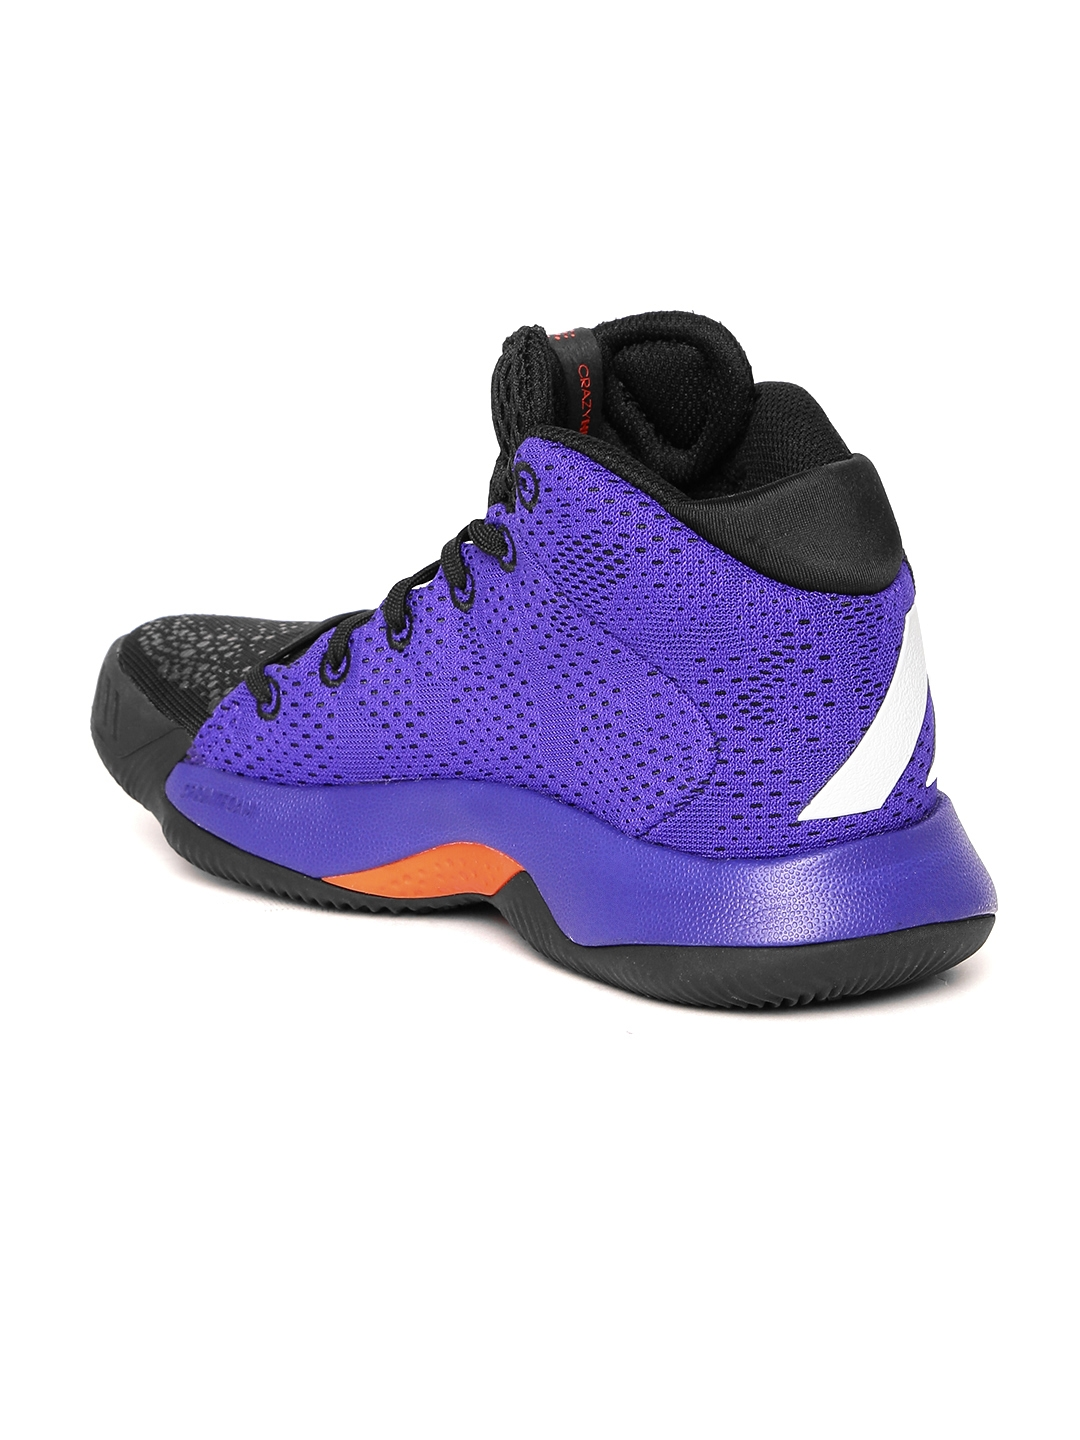 6d66c57d6961 wholesale purple adidas basketball shoes c1488 aaec2  amazon adidas kids  black purple crazy heat j basketball shoes 5001c f0769